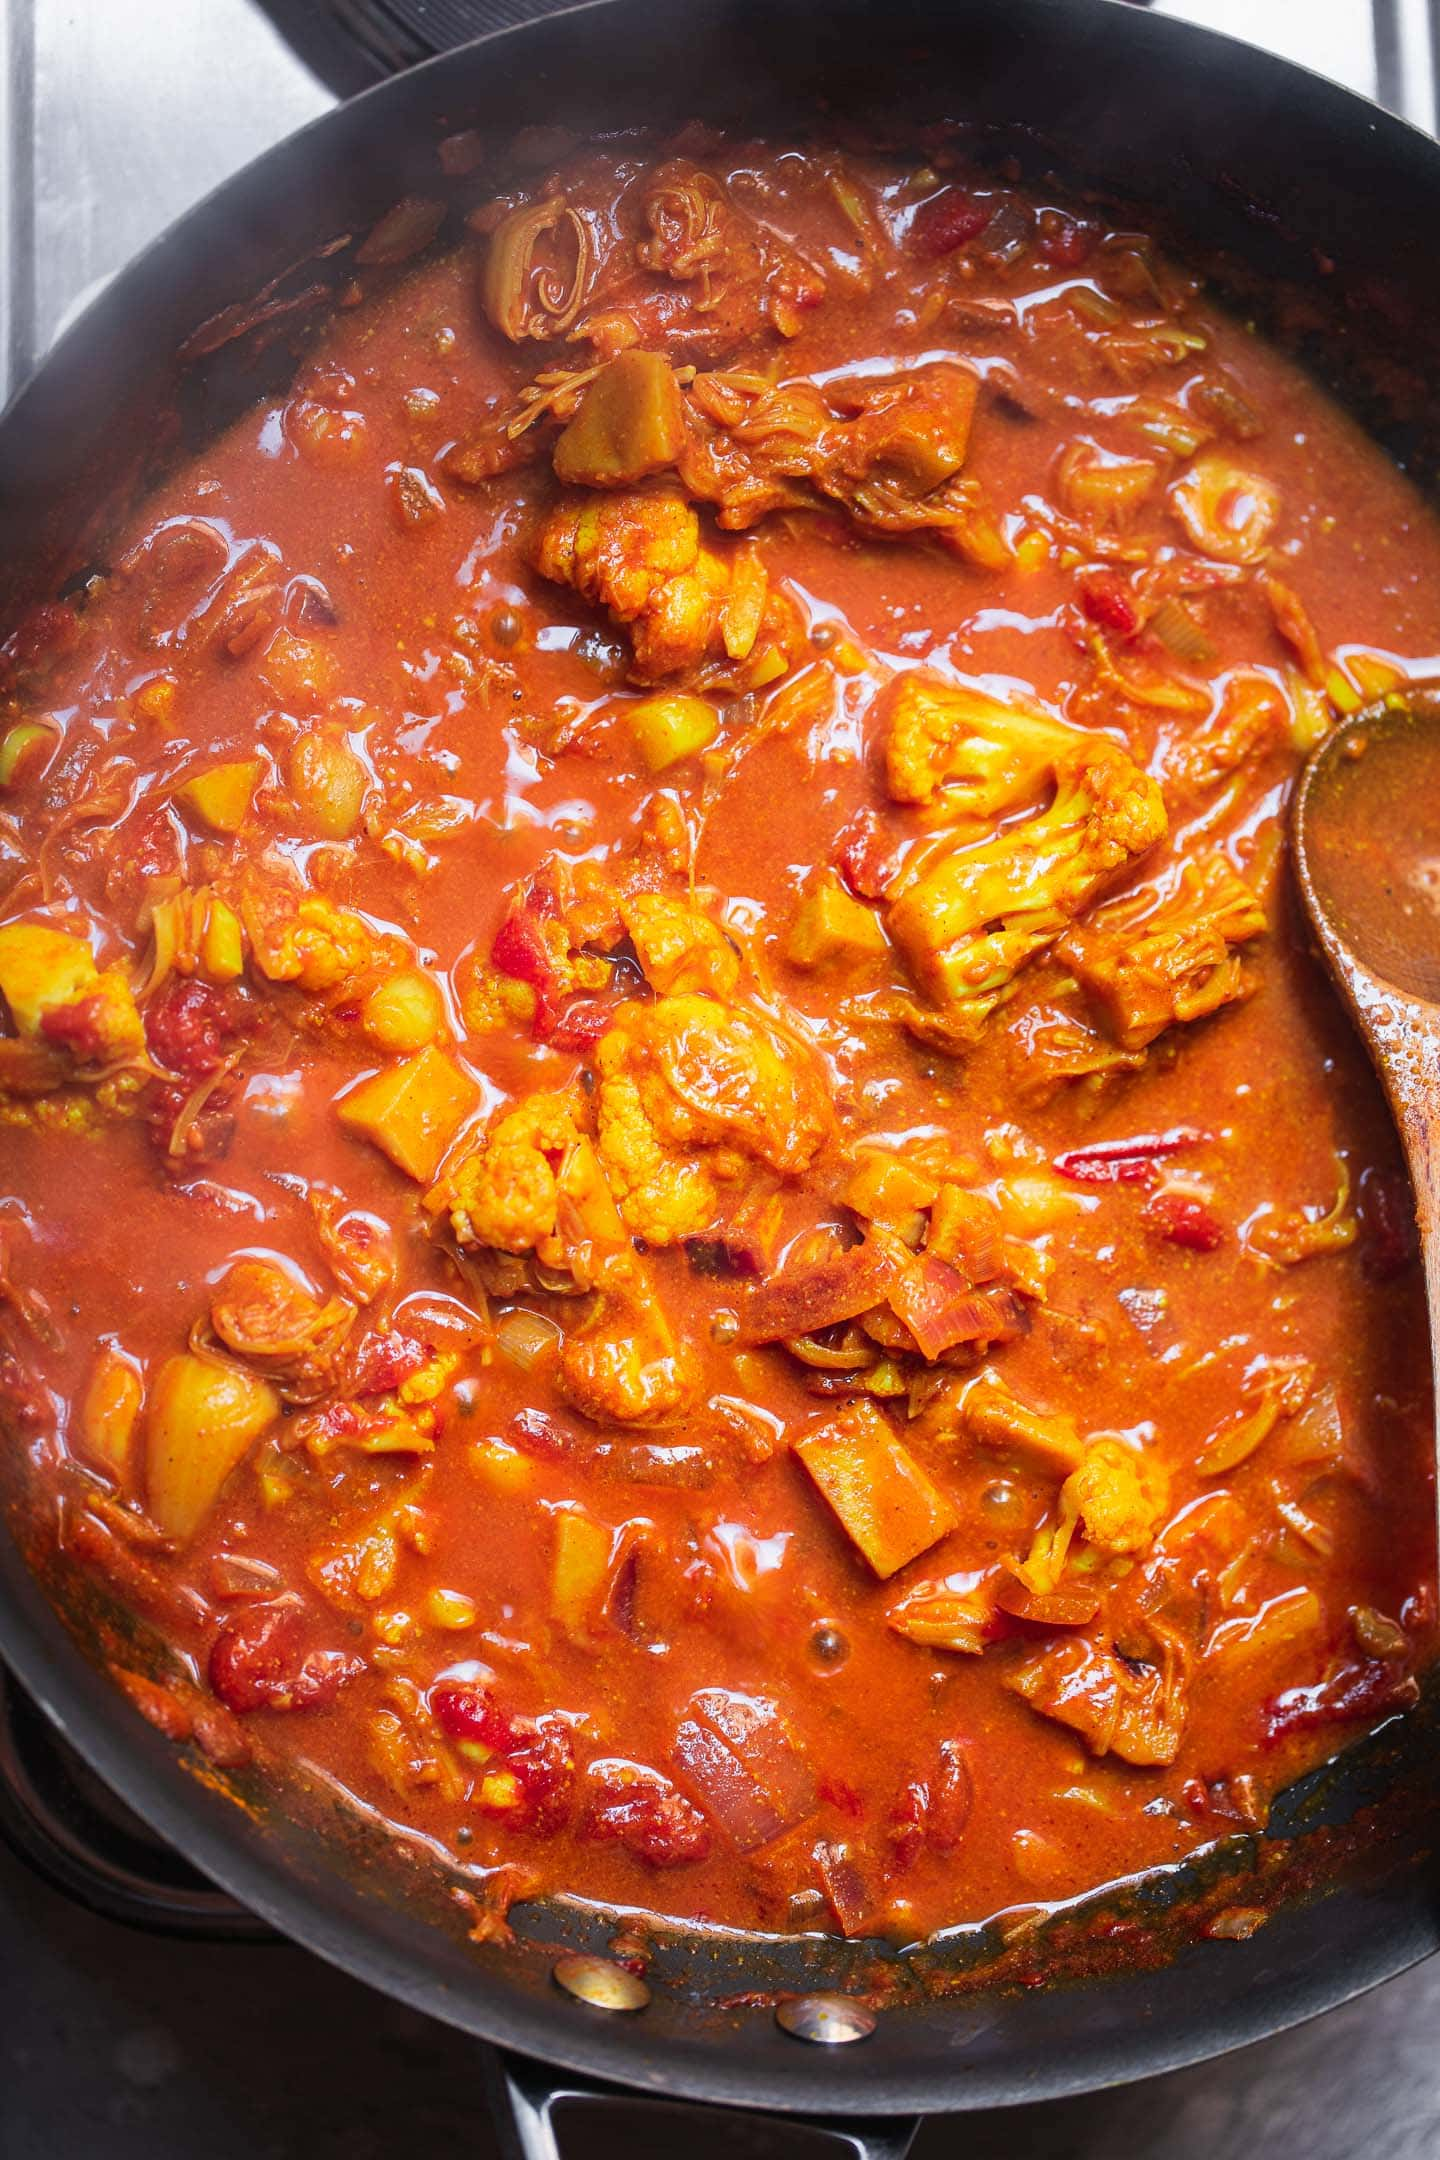 Curry with jackfruit and cauliflower in a large pan